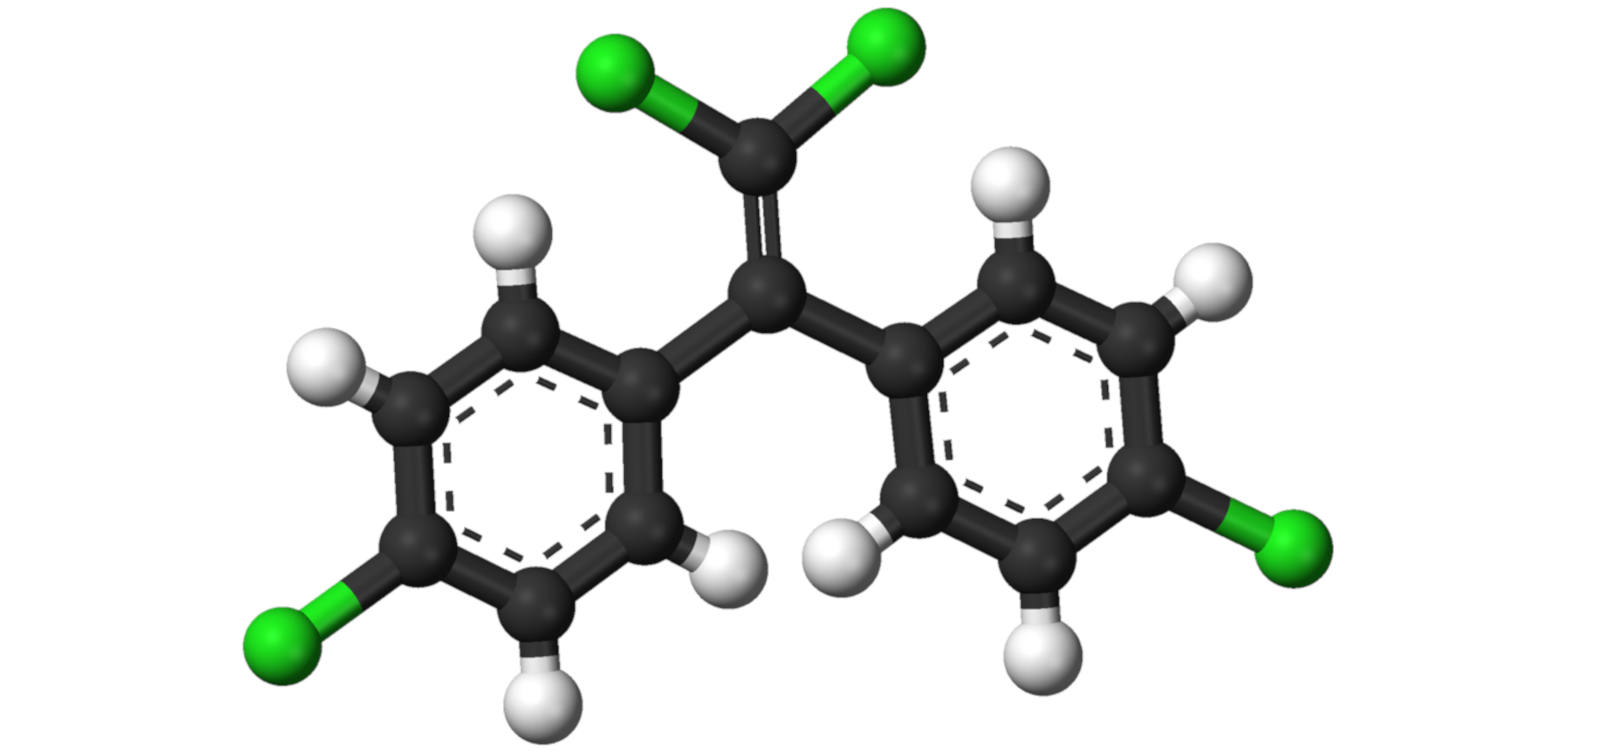 Ball-and-stick model of the DDE molecule